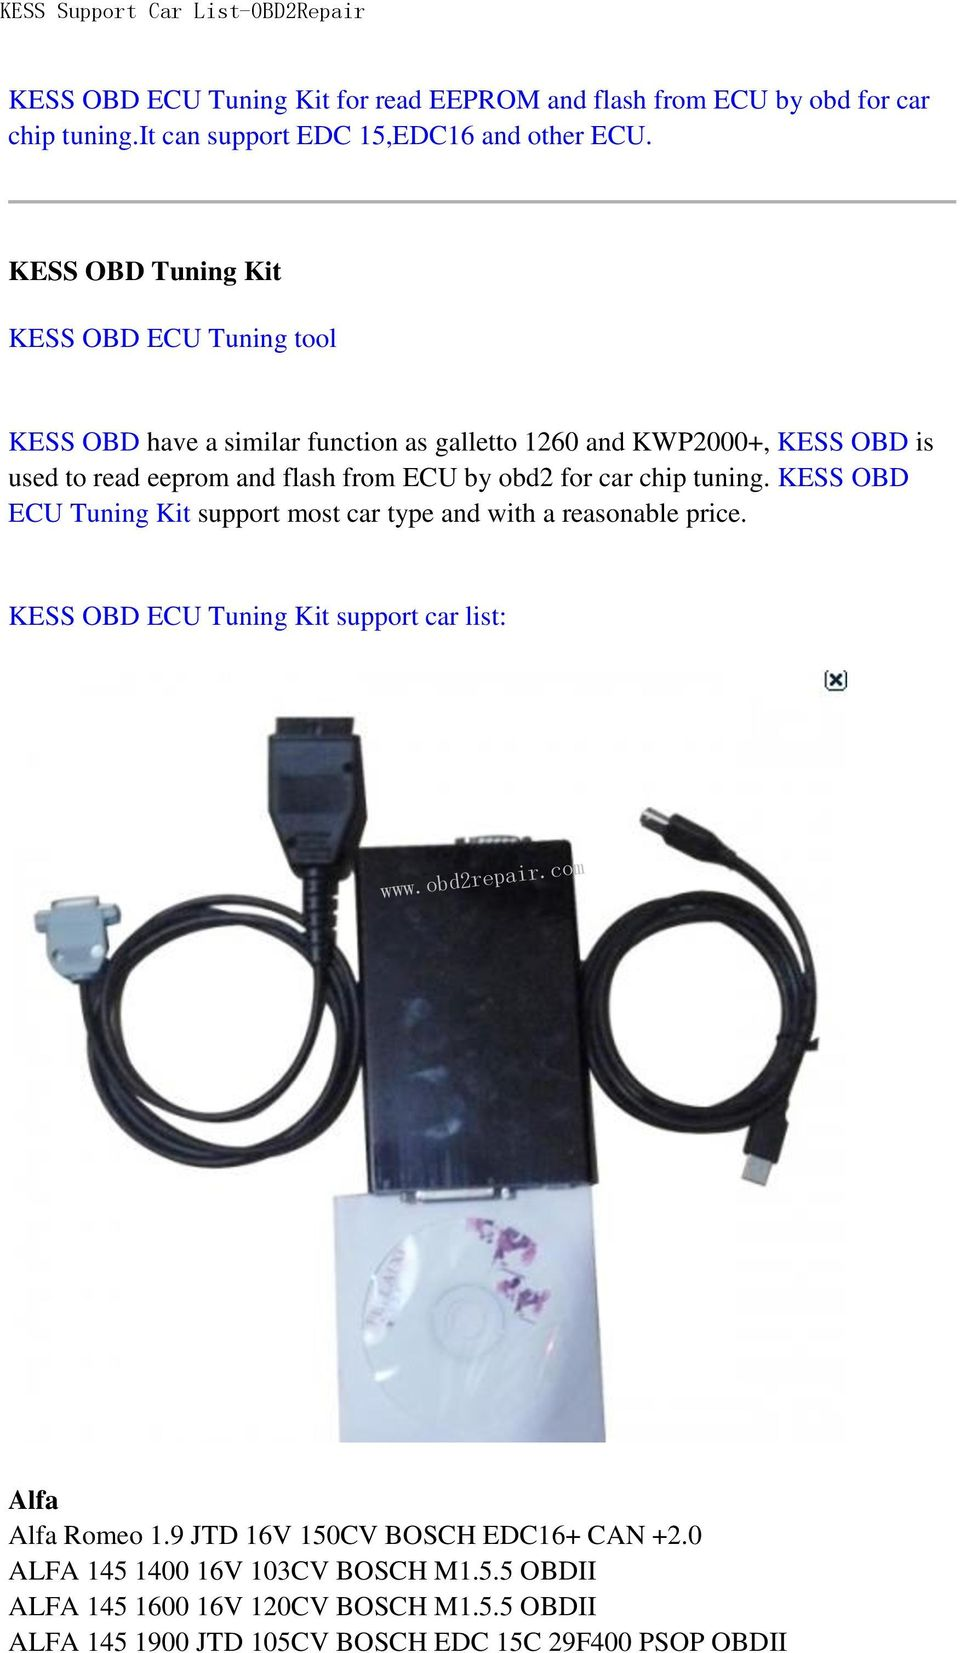 KESS OBD ECU Tuning Kit for read EEPROM and flash from ECU